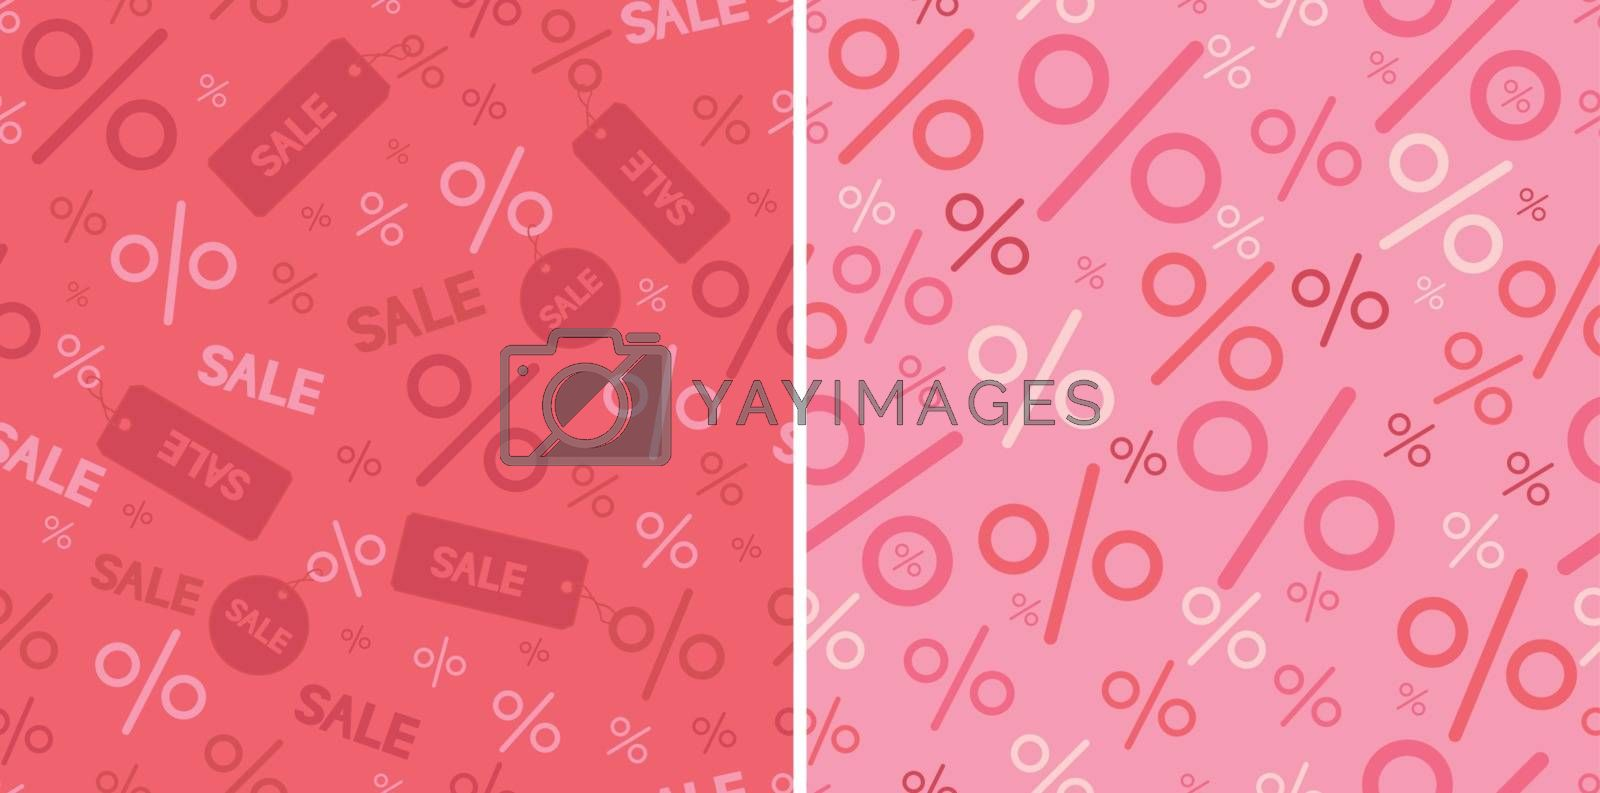 Vector percentage signs two seamless pattern backgrounds with hand drawn elements